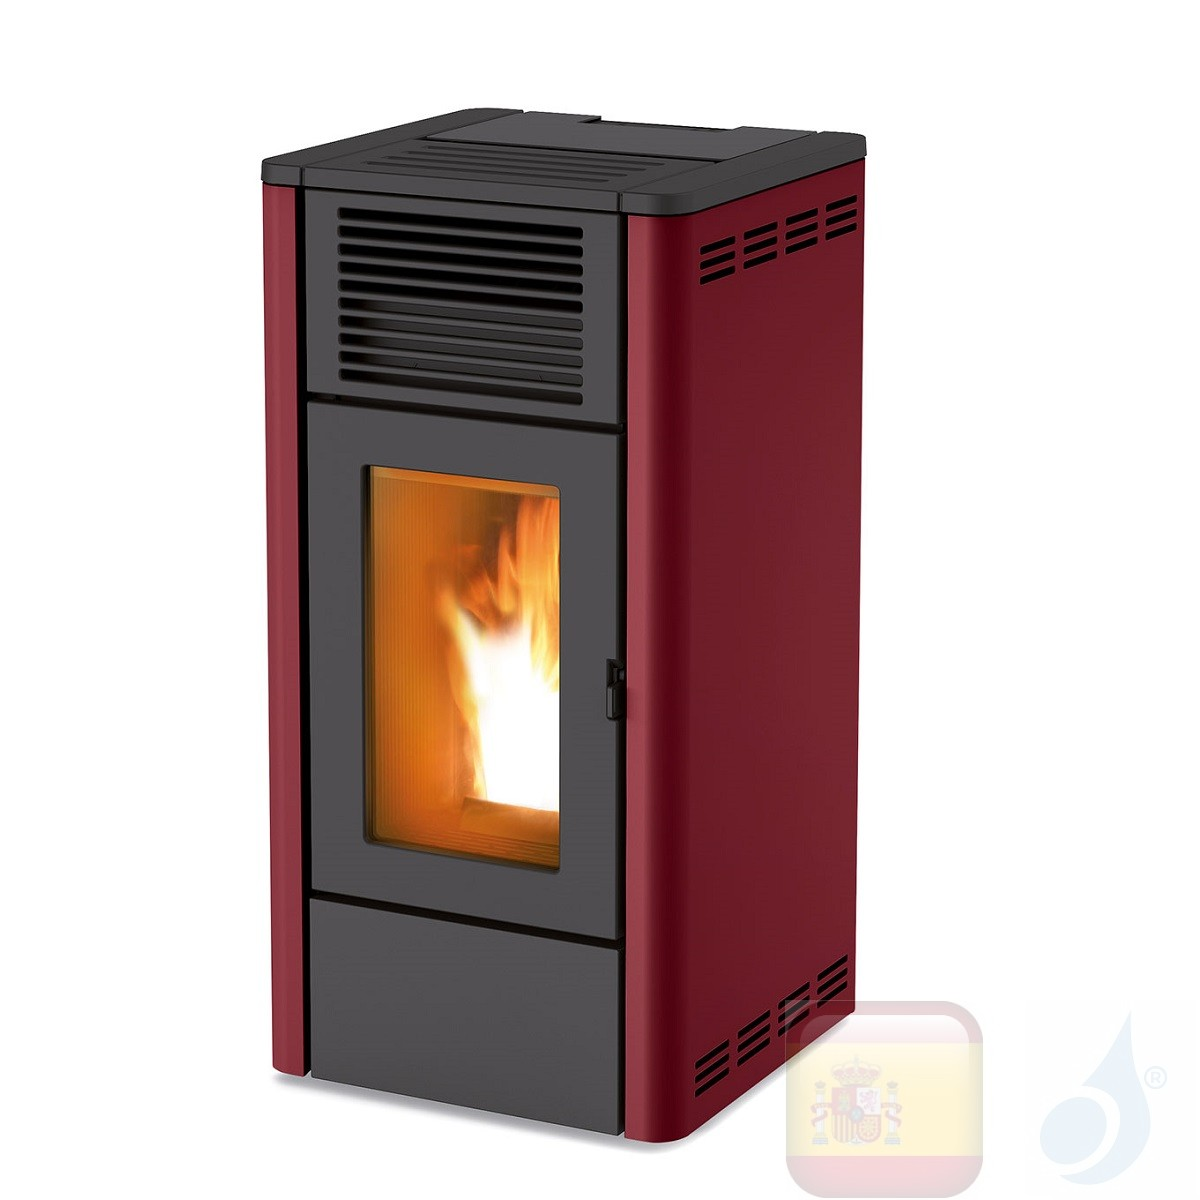 Estufa de pellets MCZ 8.0 kW Giò Air 8 S1 Bordeaux